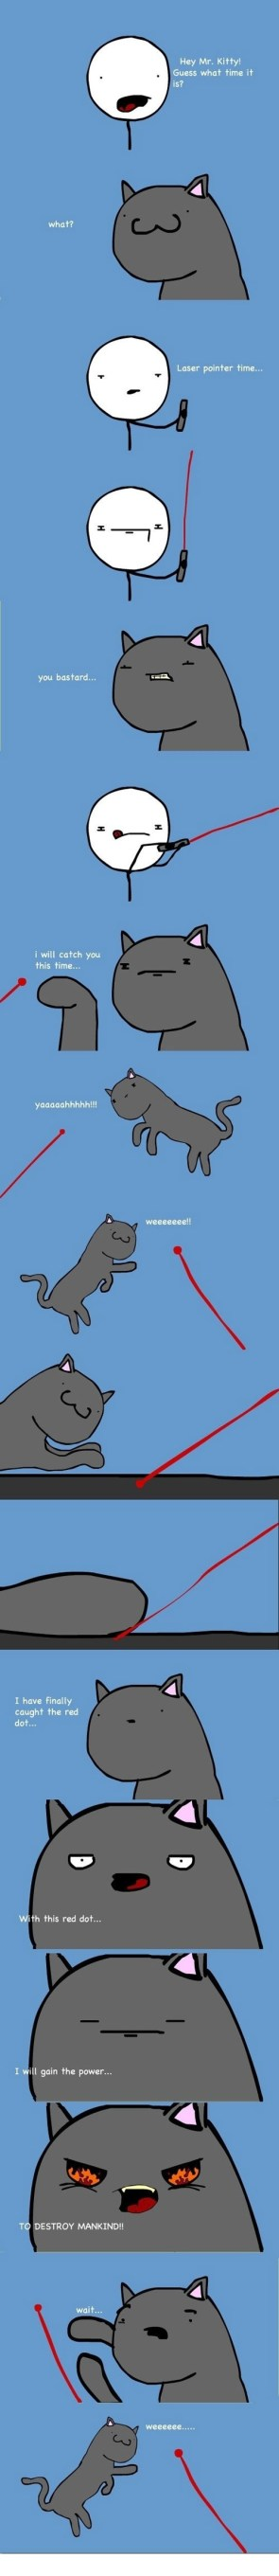 Laser pointer cat